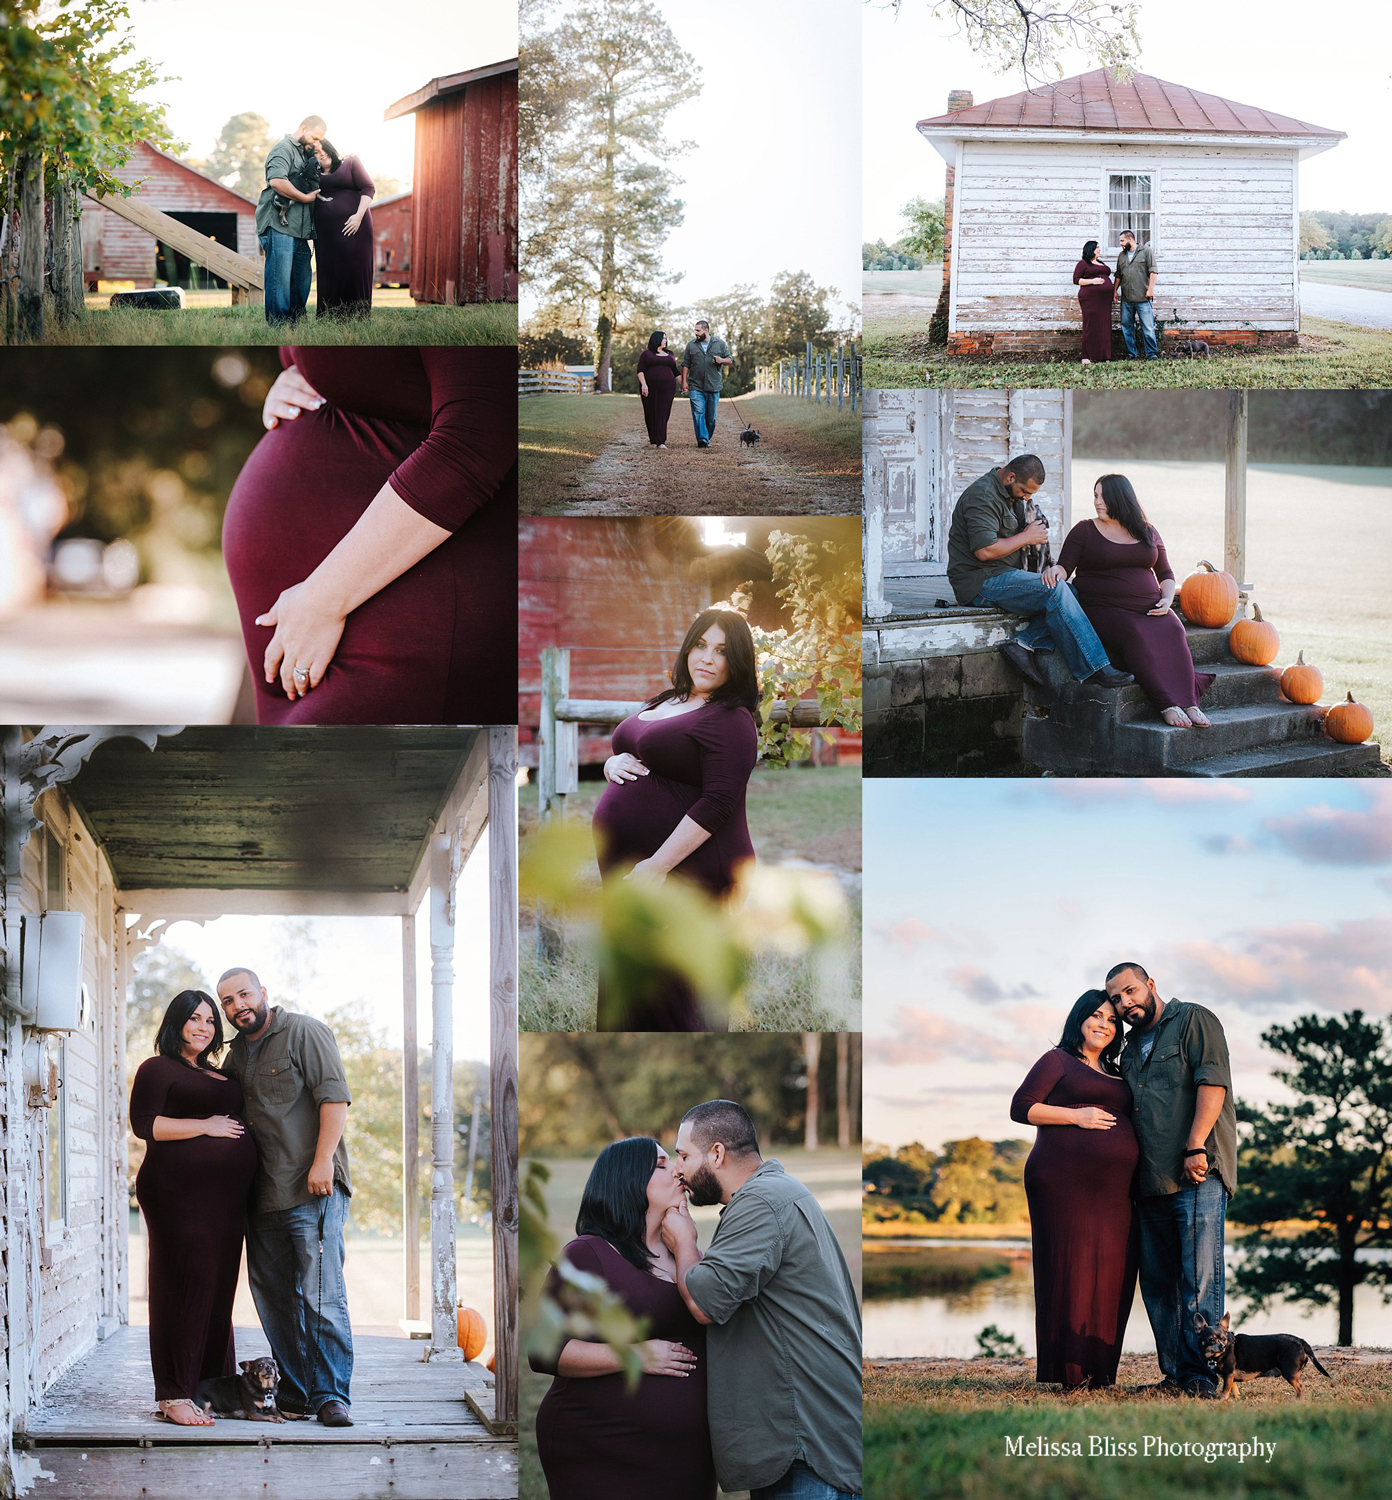 hampton-roads-maternity-photographer-rustic-maternity-session-on-the-farm-windsor-castle-melissa-bliss-photography-suffolk.jpg